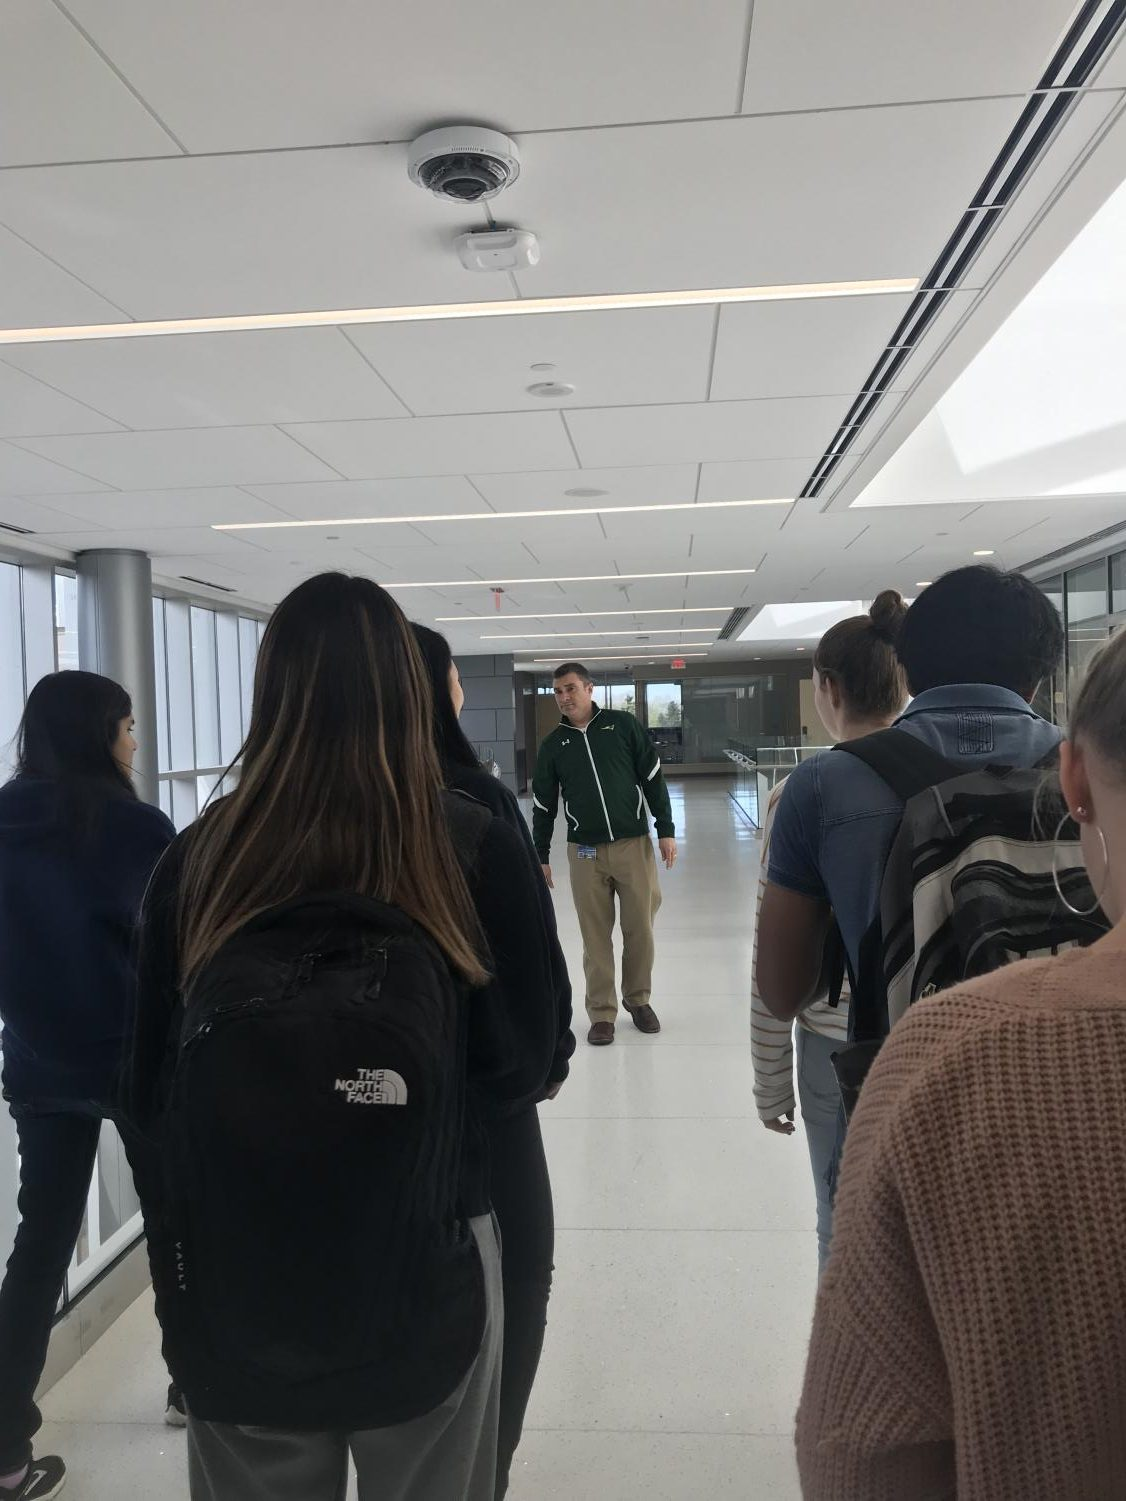 Students follow Mr.Gobble one of the main hallways of the new addition to the East Building. Classes are set to start in the new addition in fall of 2019. ​